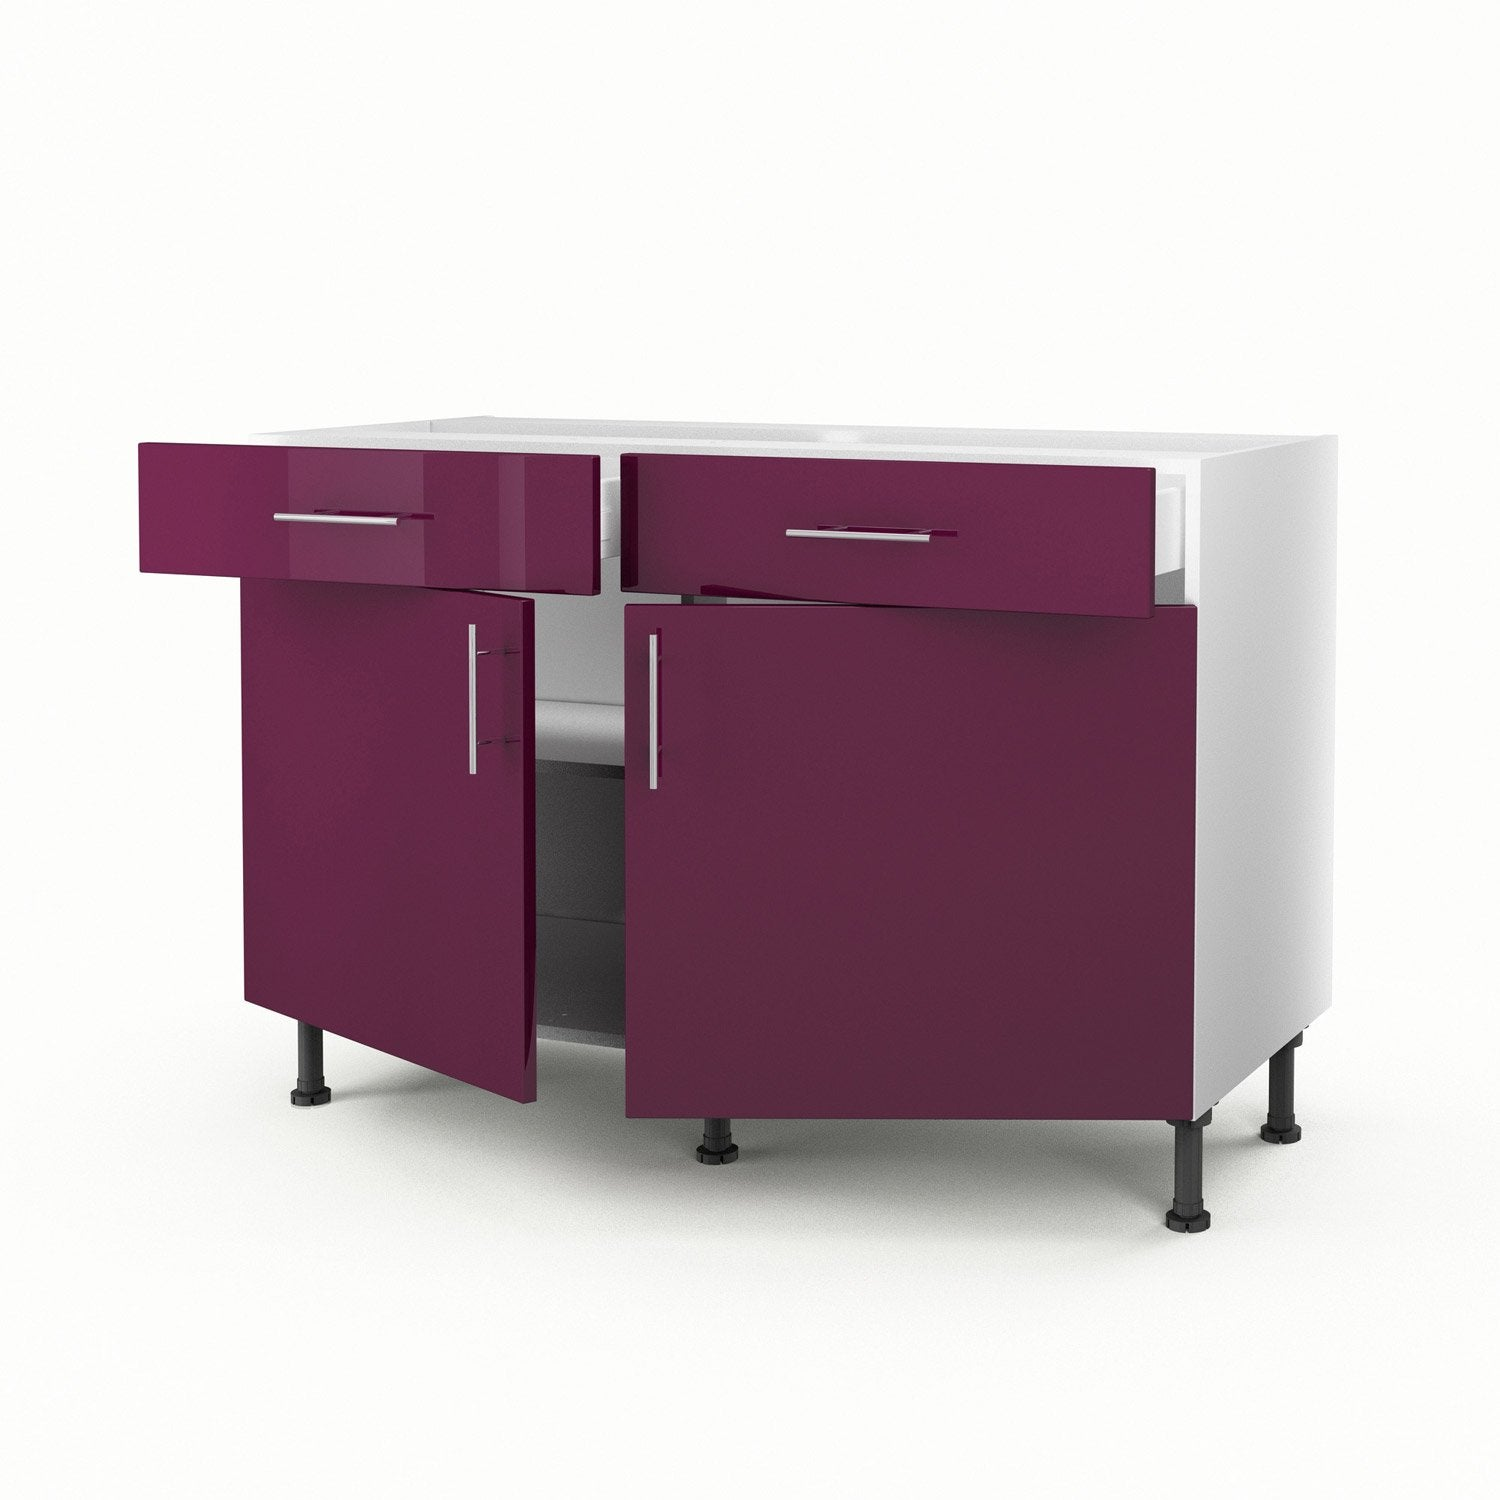 meuble de cuisine bas violet 2 portes 2 tiroirs rio h70xl120xp56 cm leroy merlin. Black Bedroom Furniture Sets. Home Design Ideas